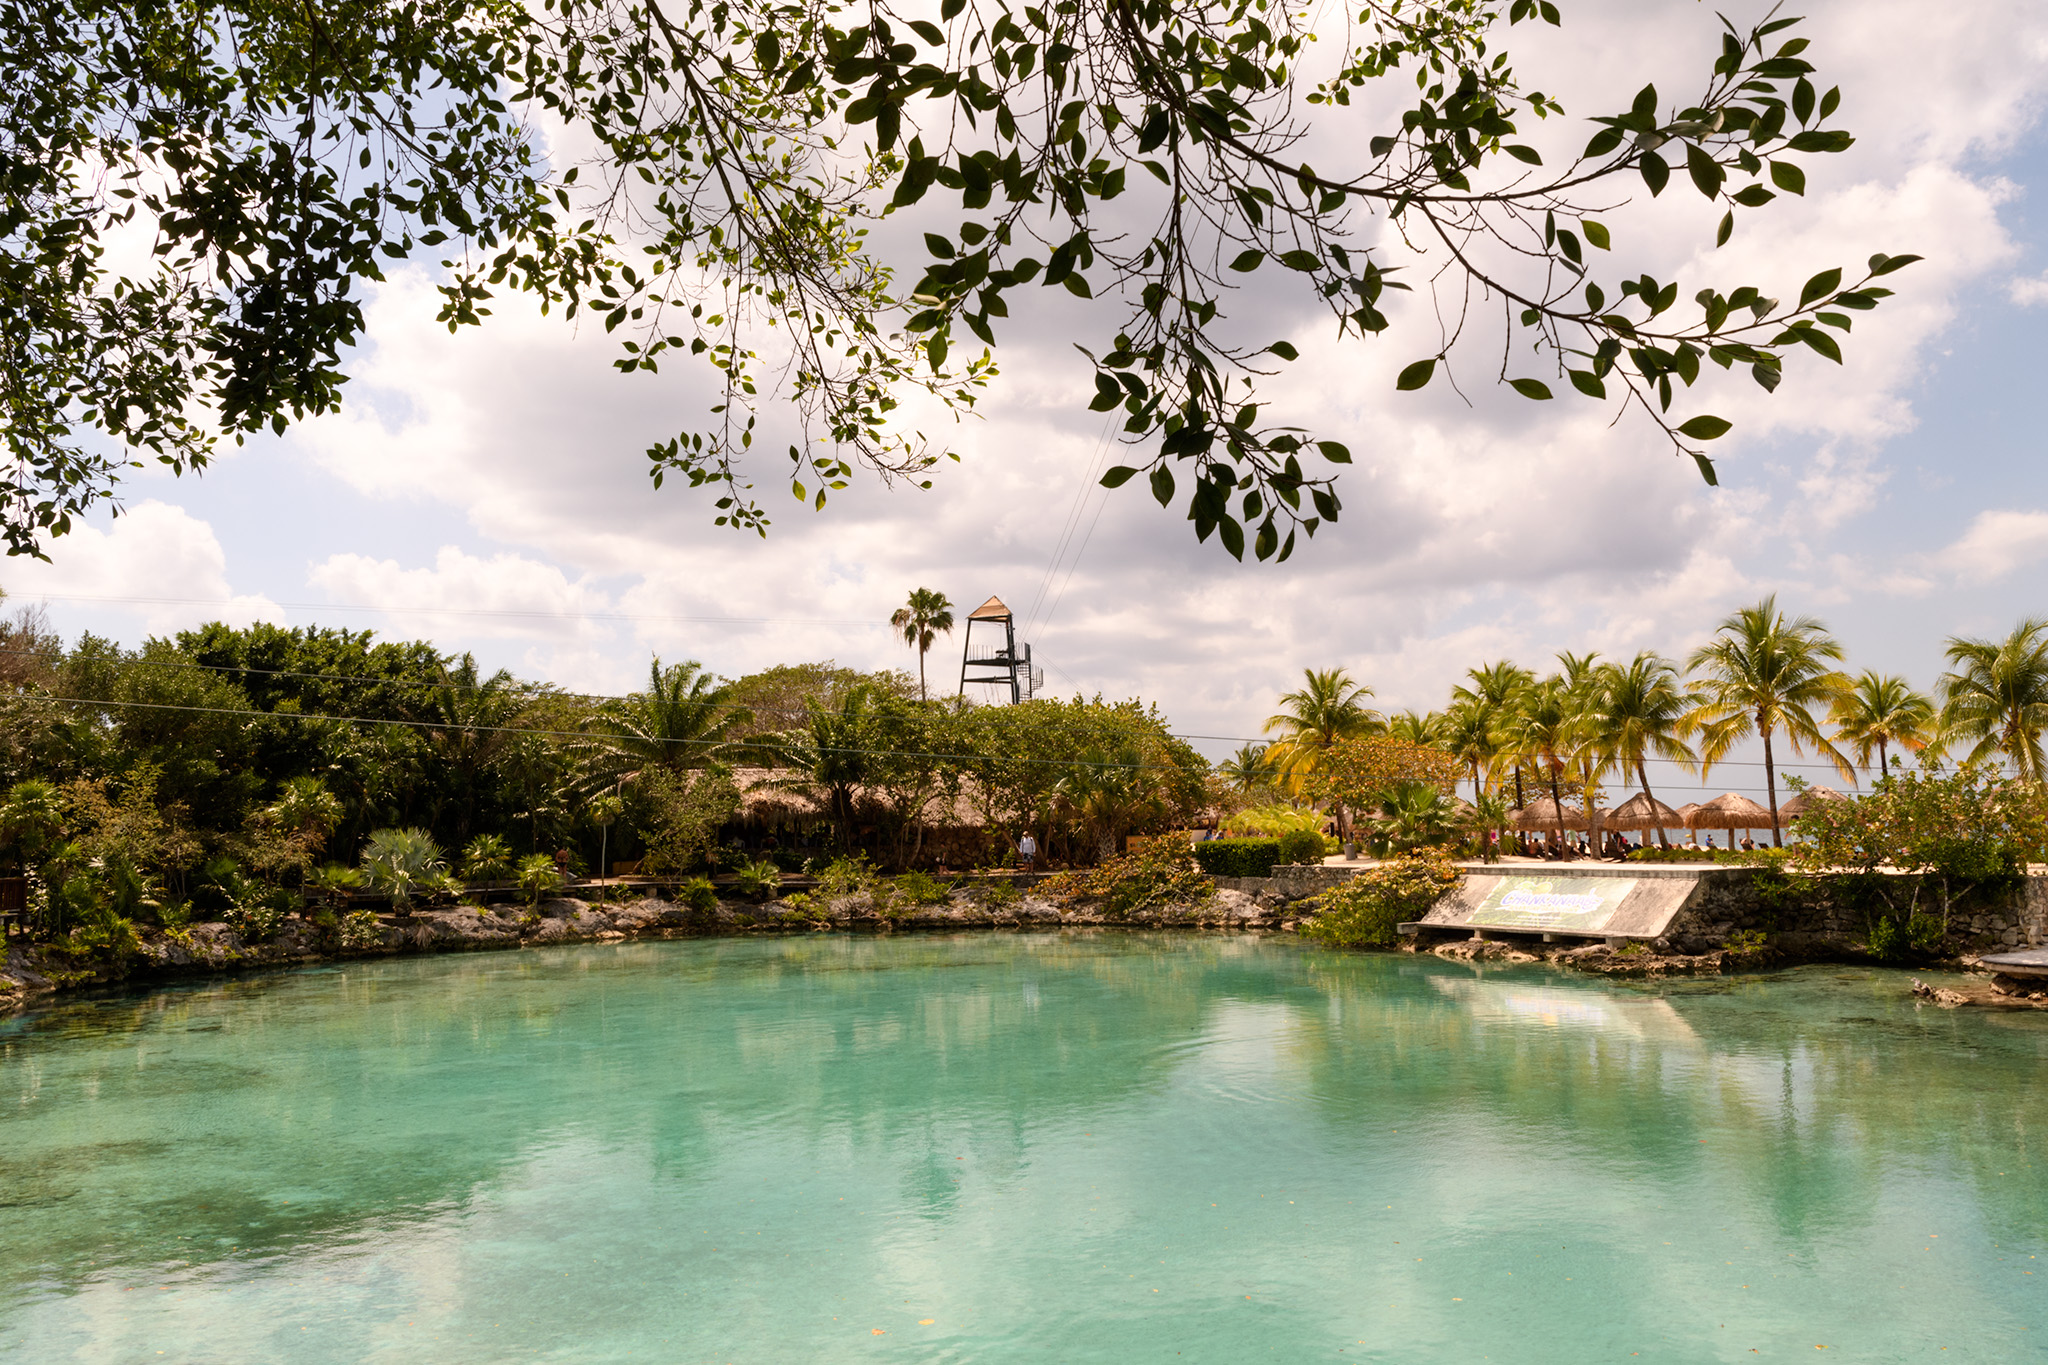 The park is named for this beautiful lagoon